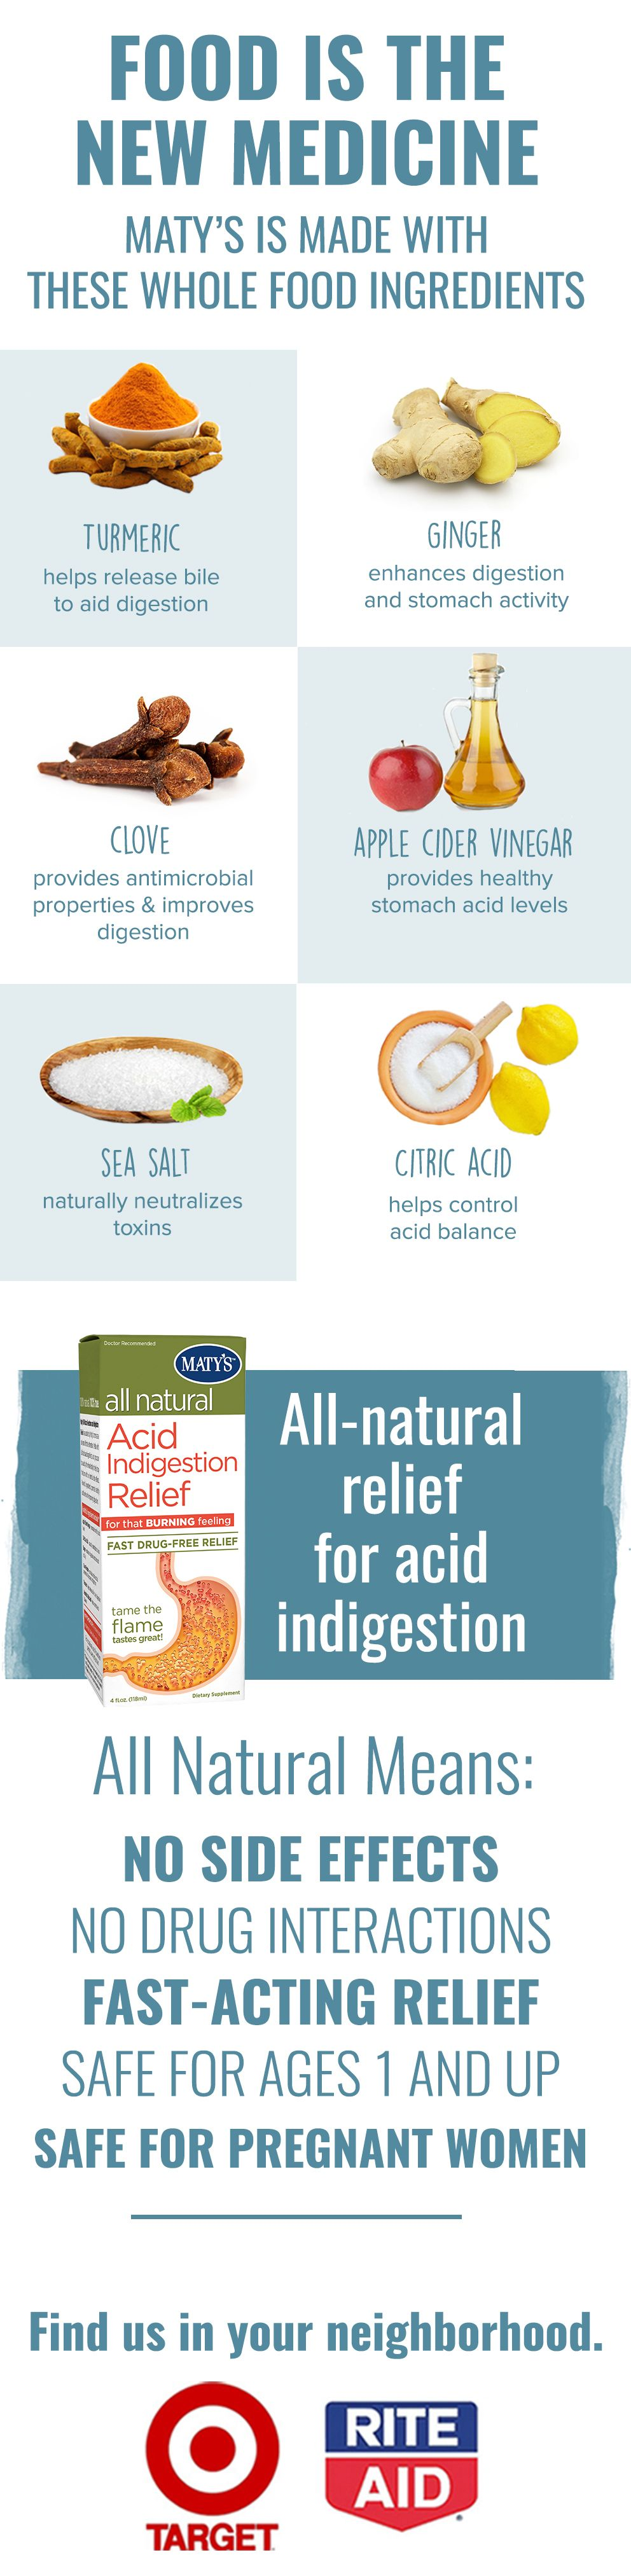 safely relieve your heartburn with maty's all natural acid